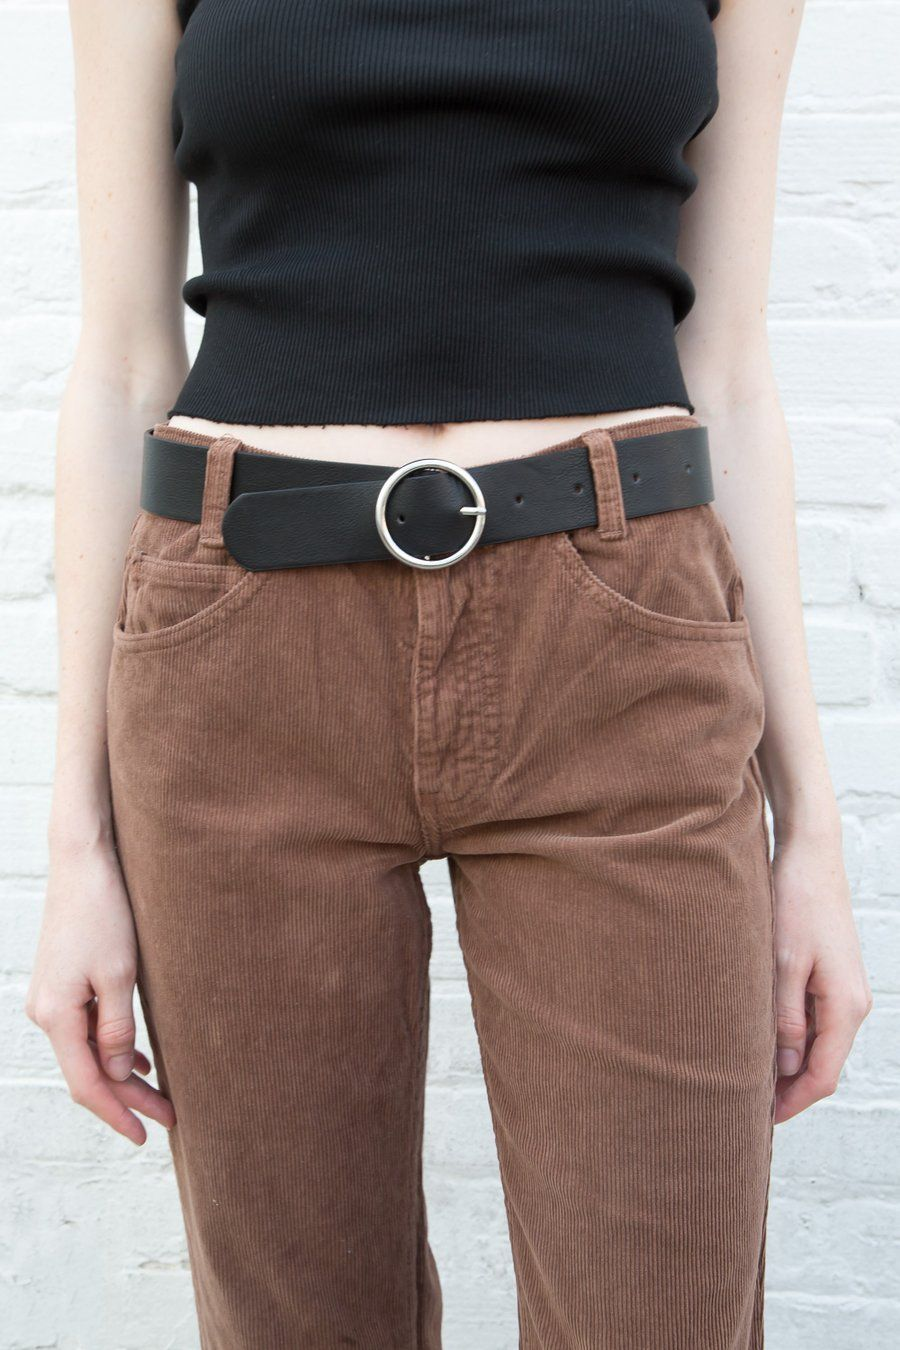 Black and Silver Circle Buckle Belt